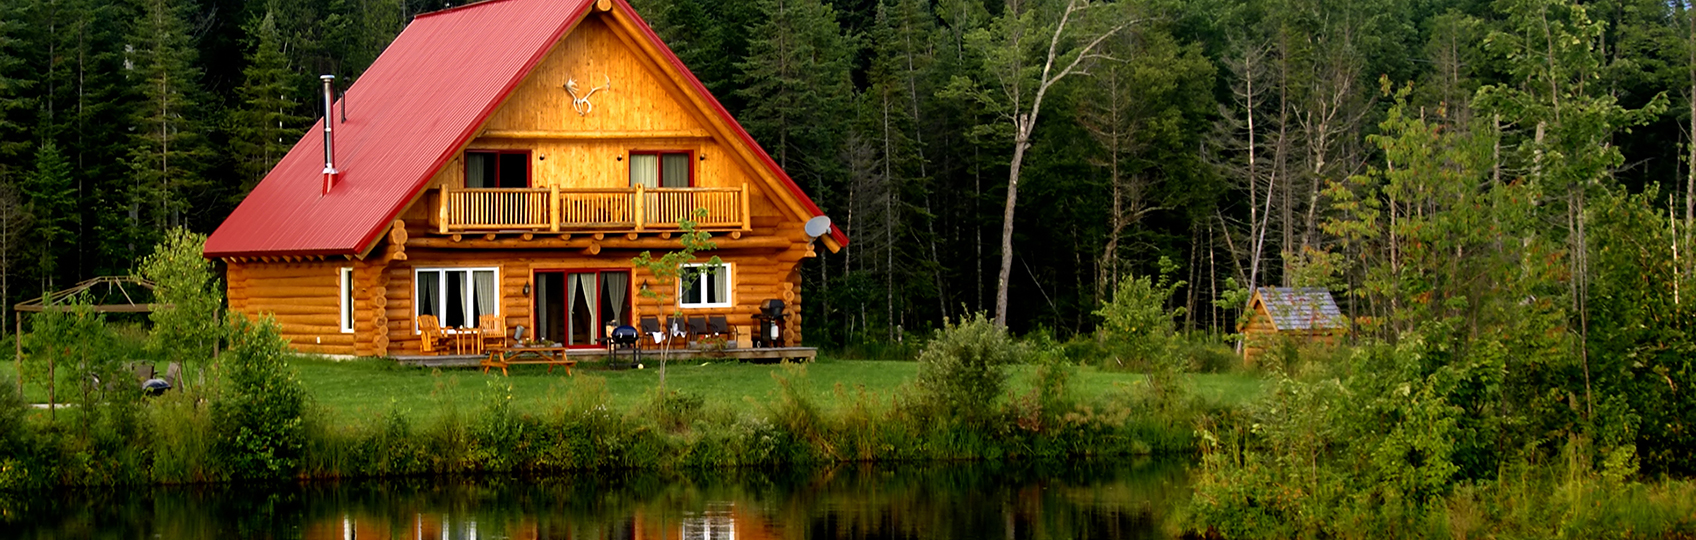 log homes for sale in Vermont